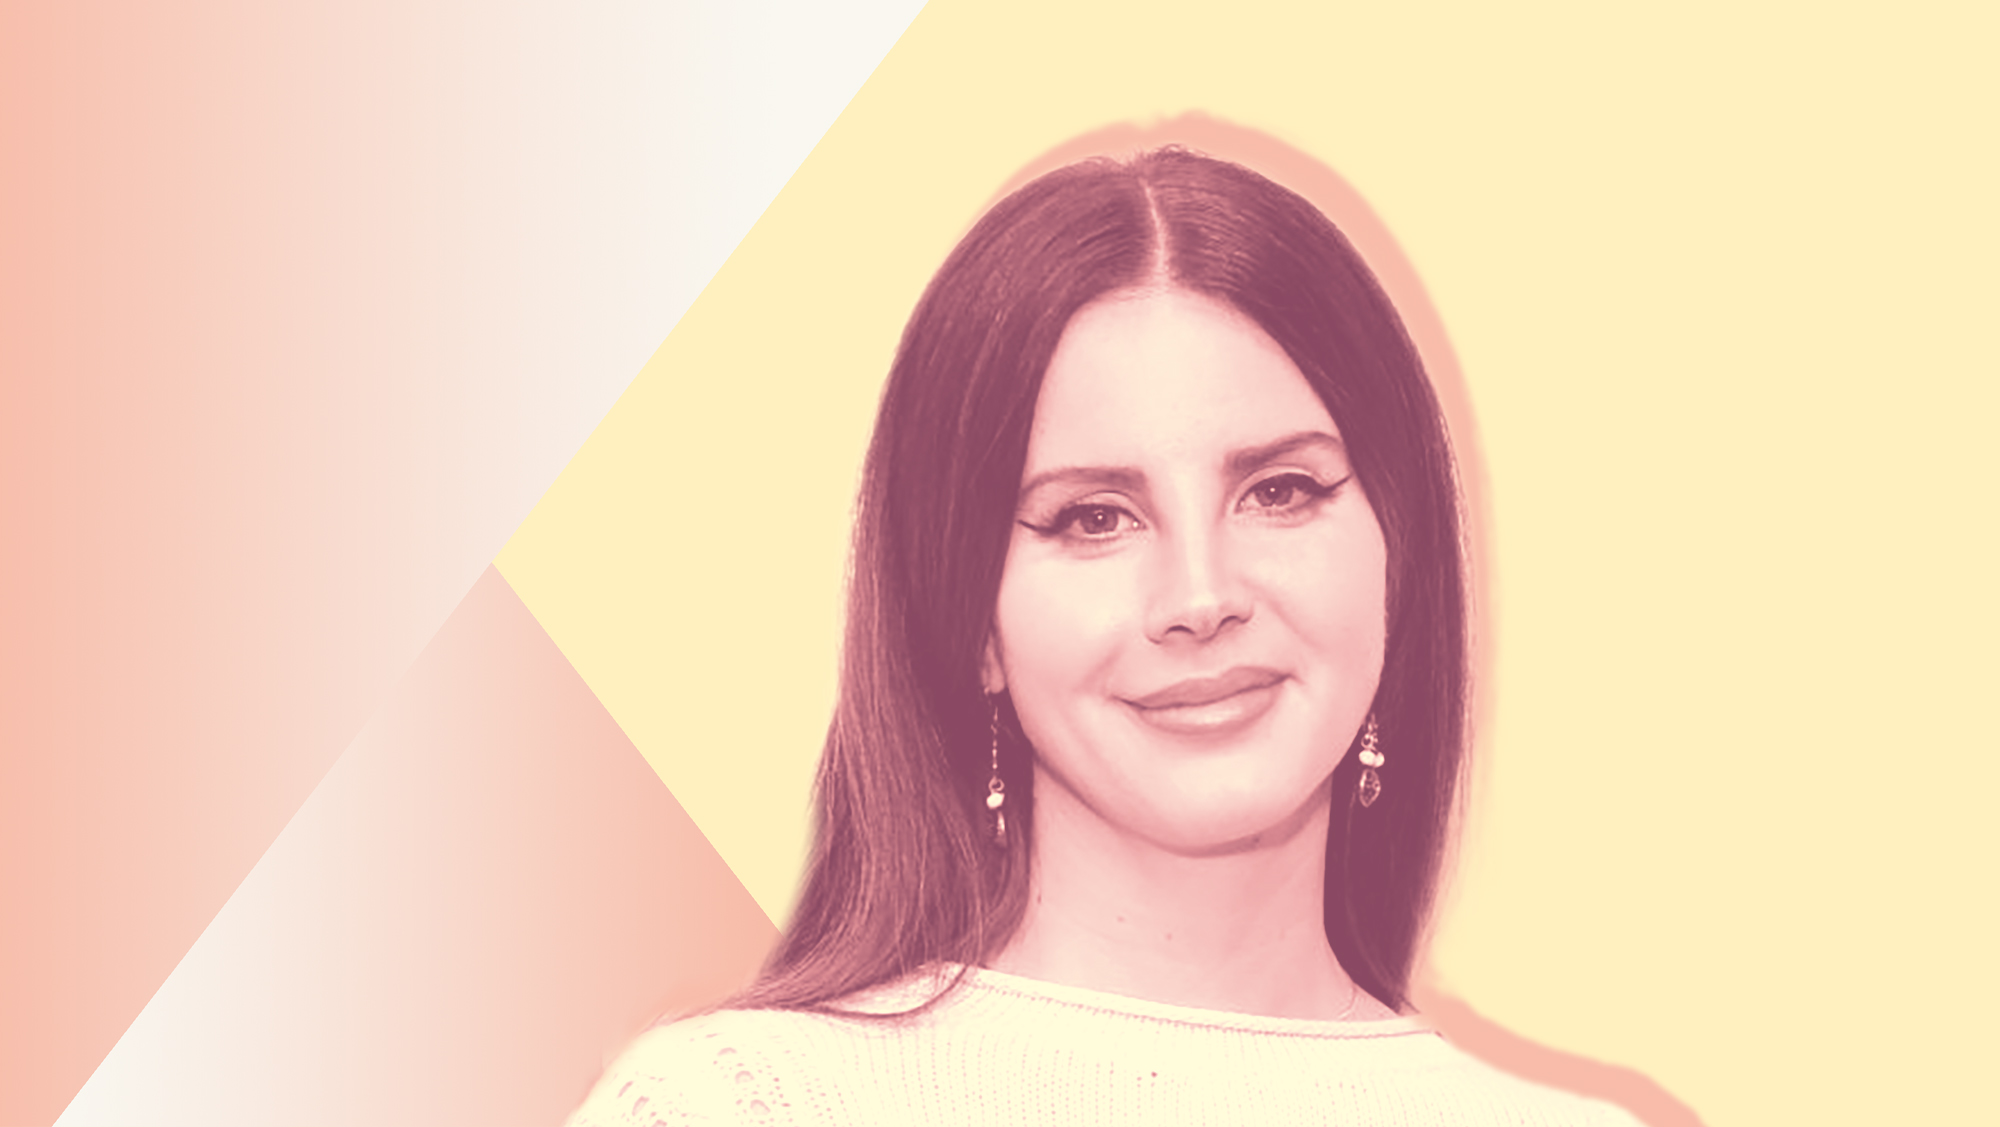 LOS ANGELES, CALIFORNIA - OCTOBER 13: Lana Del Rey attends The Drop: Lana Del Rey at the GRAMMY Museum on October 13, 2019 in Los Angeles, California. (Photo by Rebecca Sapp/Getty Images for The Recording Academy )